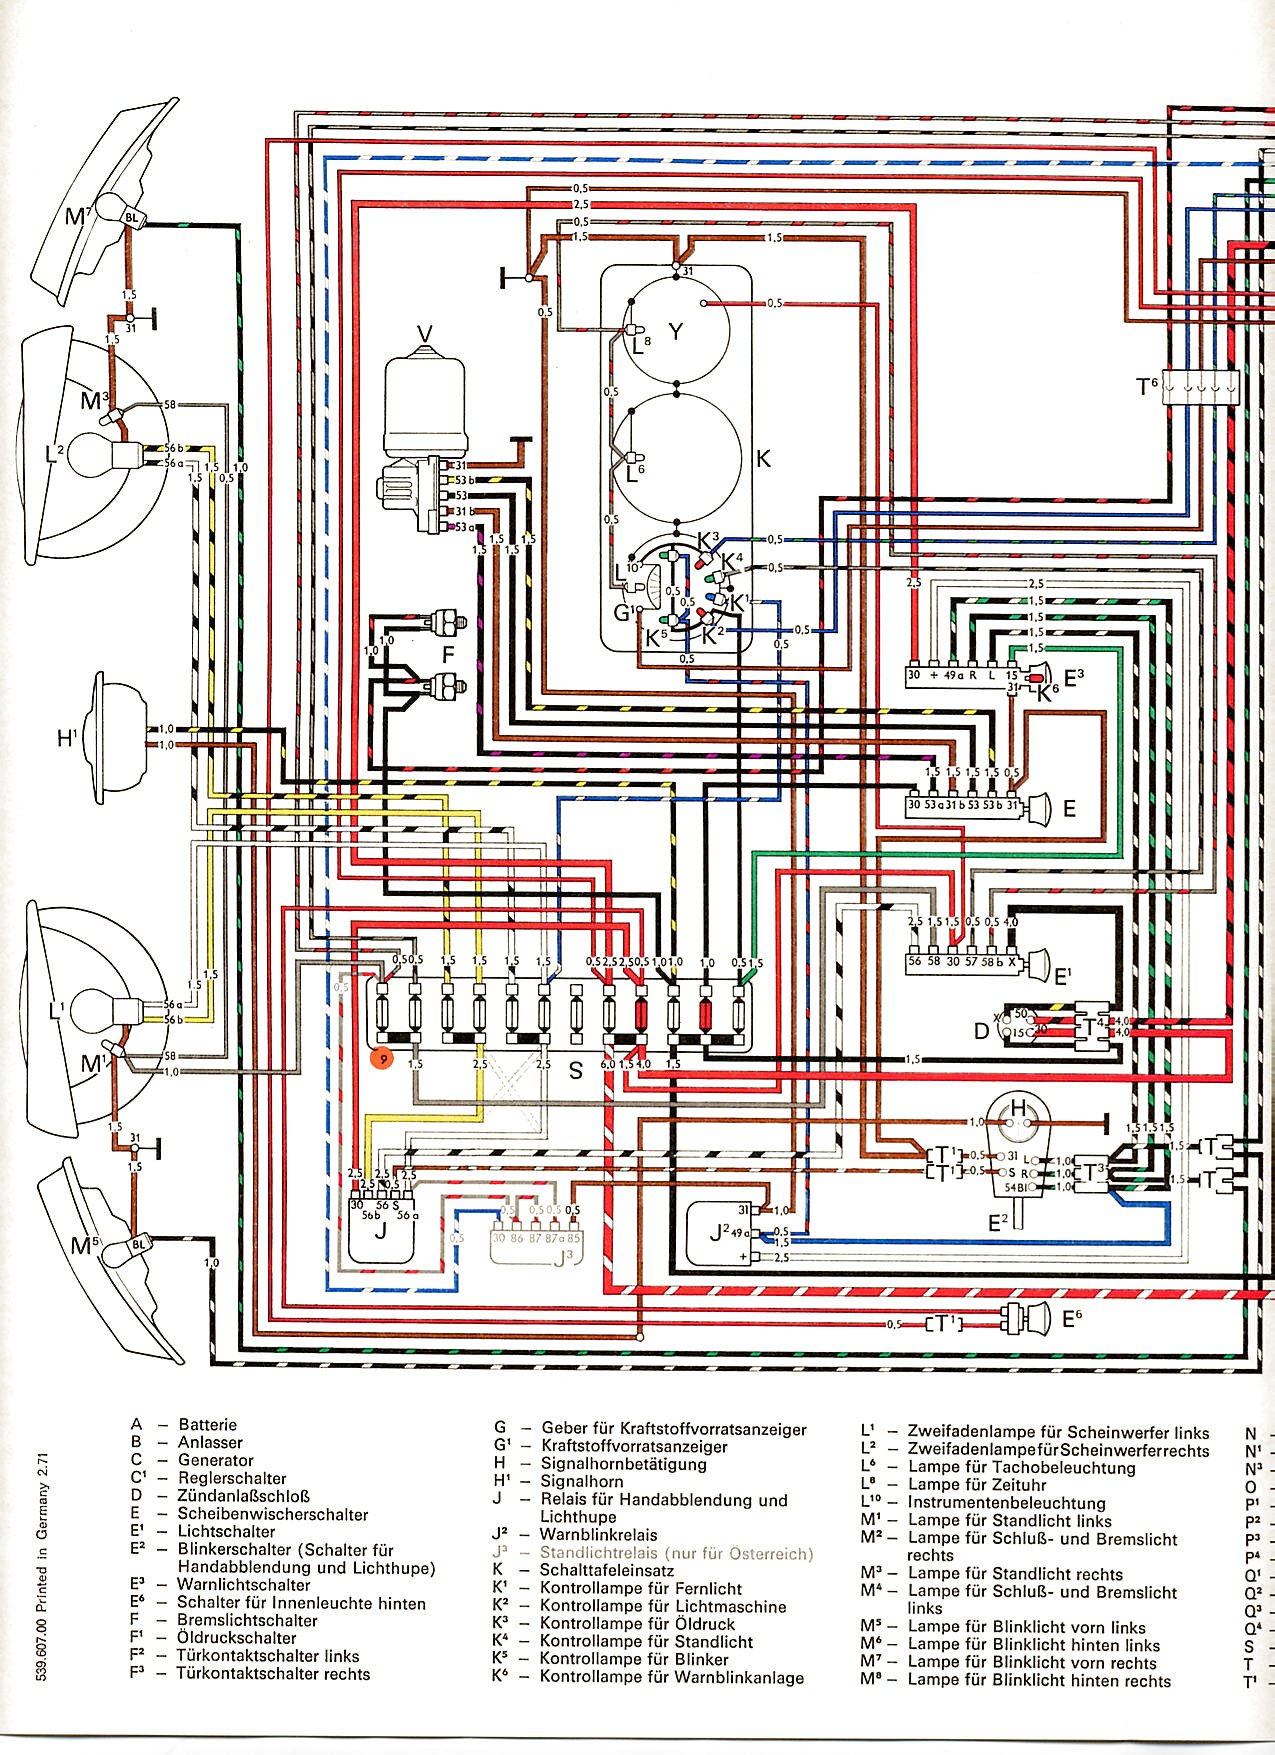 Alternator Wiring Diagram For 1970 Vw Beetle Will 74 76 Bus Detailed Schematics Rh Politicallyofftarget Com 1974 Volkswagen Starter